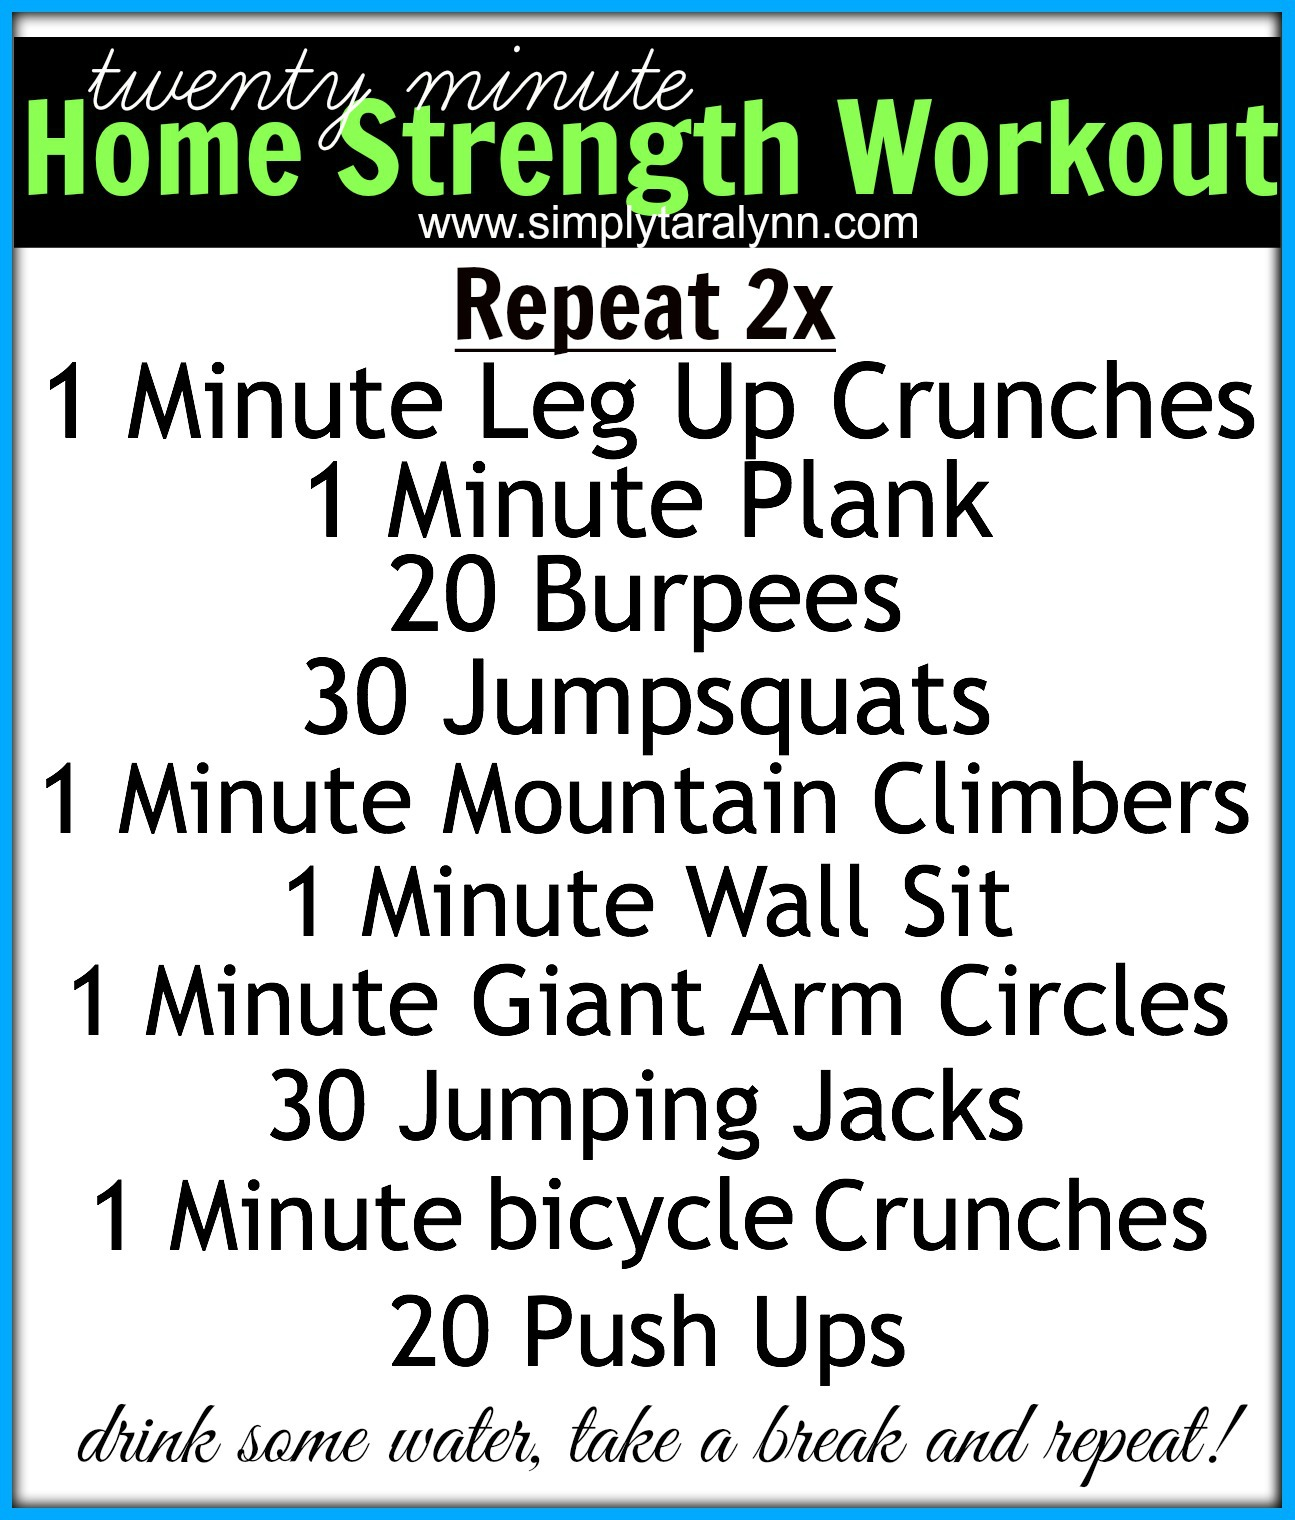 Strength Training: Friday's Treadmill & Strength Training Workout + Post Fuel